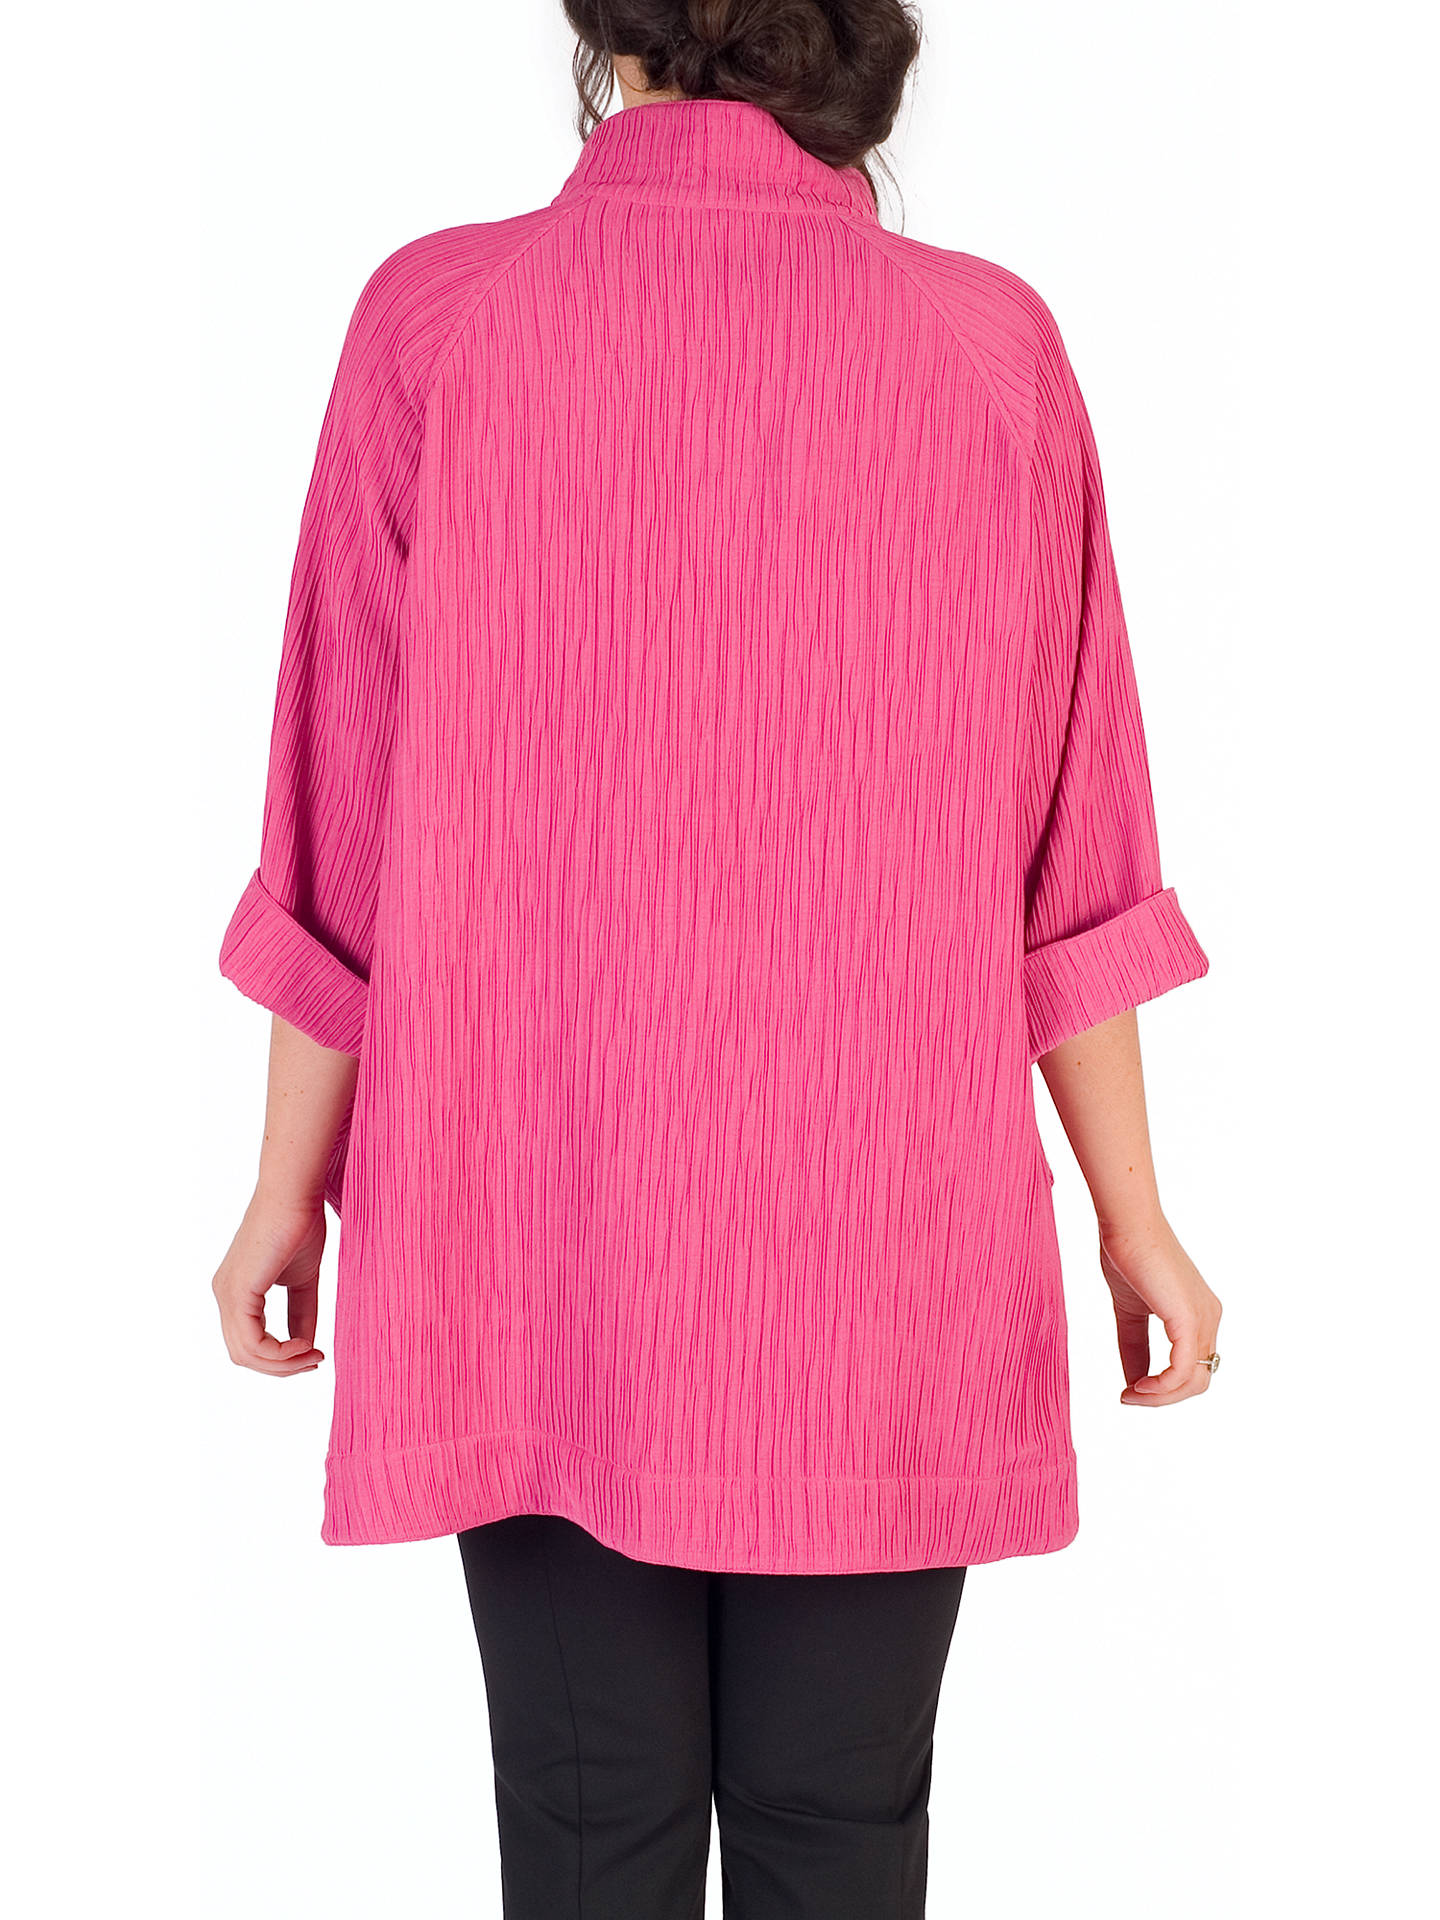 BuyChesca Textured Jacquard Coat, Rose Pink, 12-14 Online at johnlewis.com